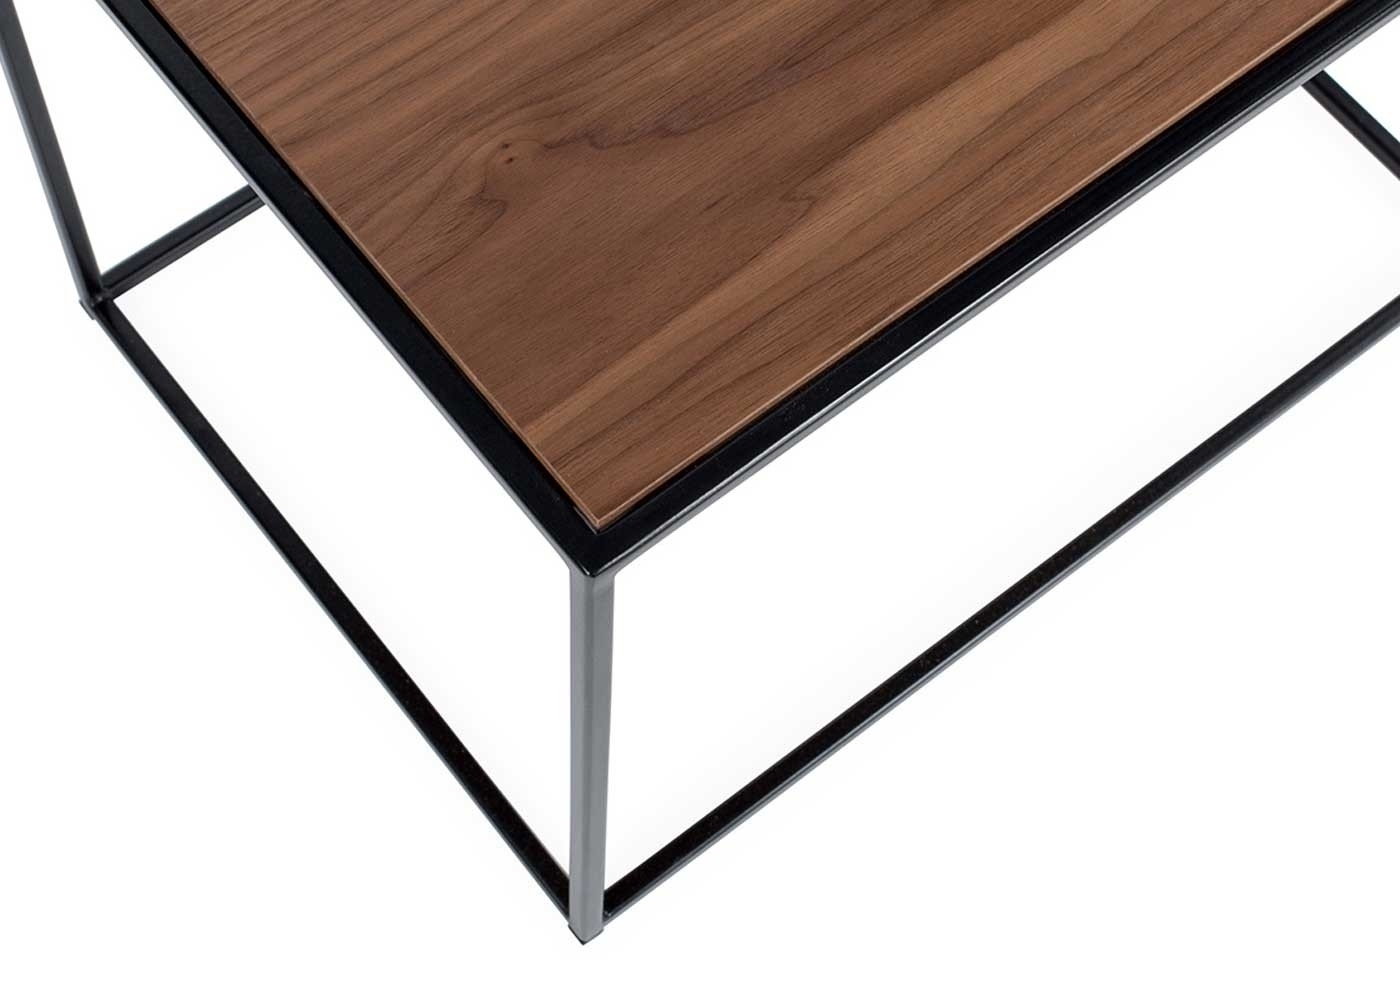 Tower Coffee Table | Heal's pertaining to Suspend Ii Marble And Wood Coffee Tables (Image 28 of 30)